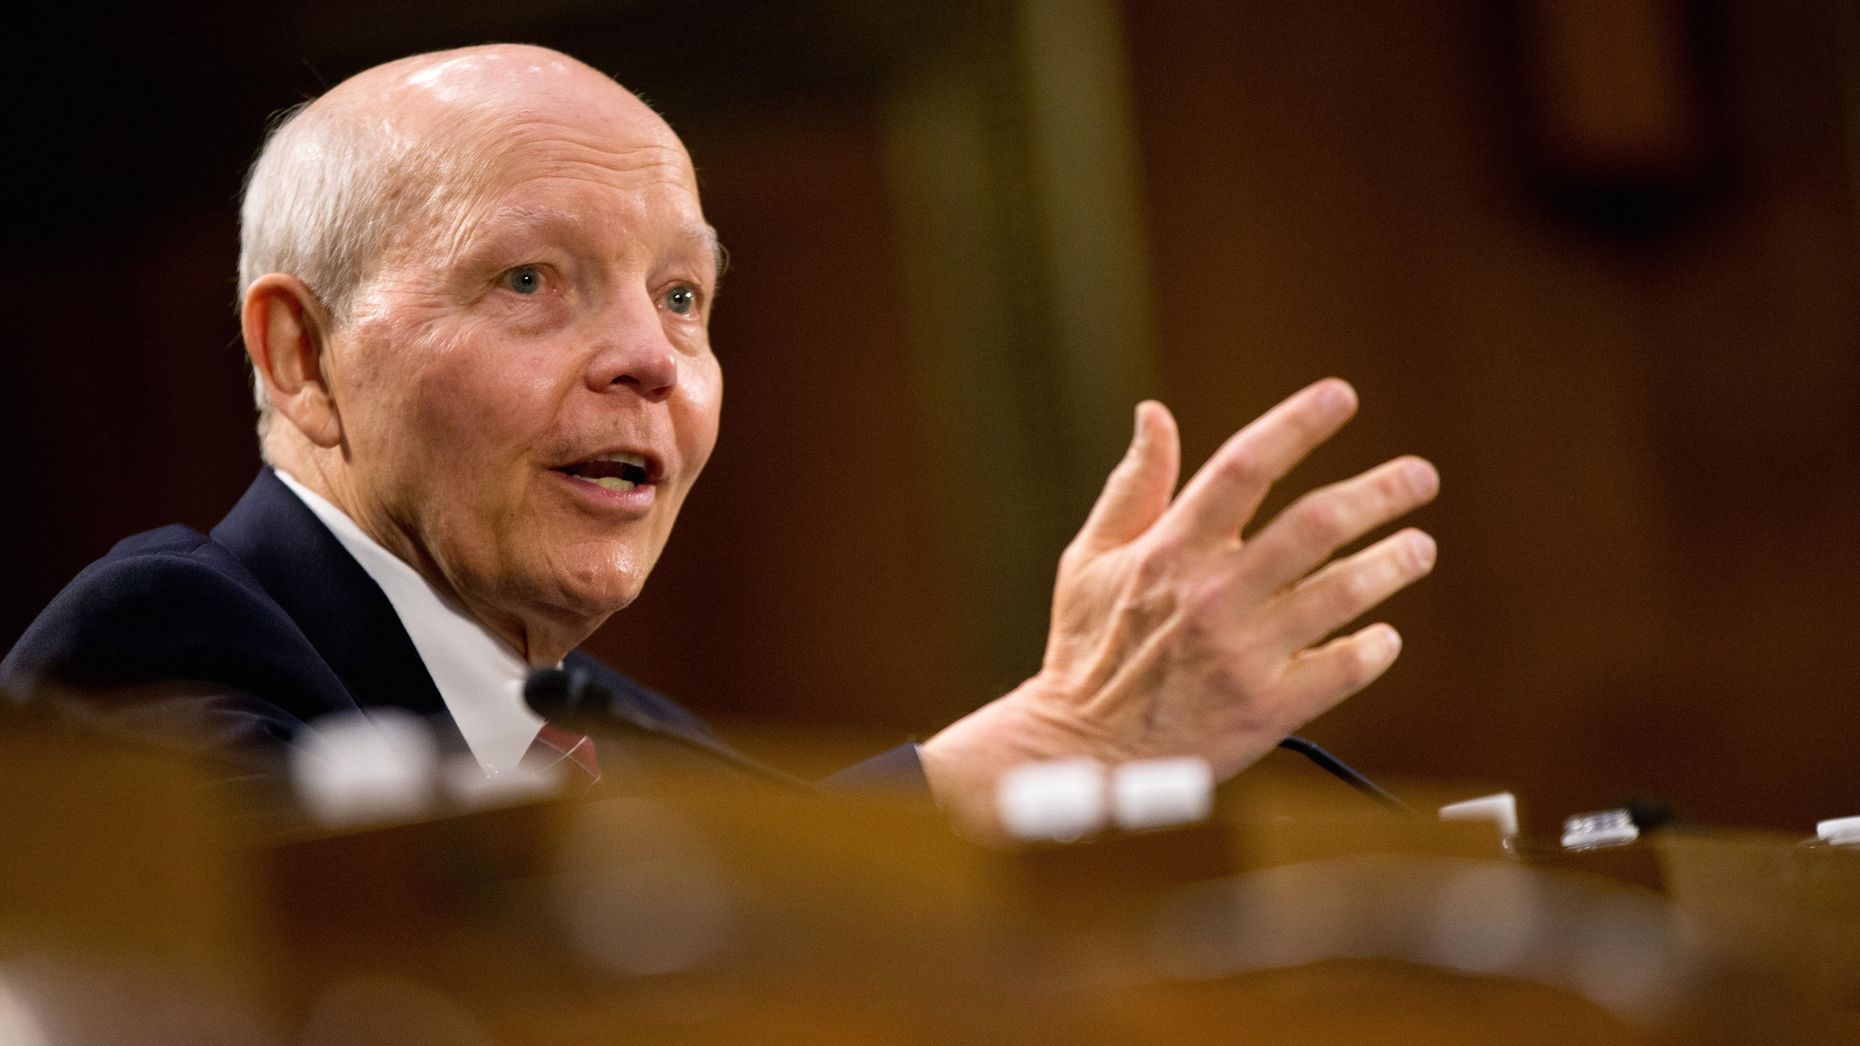 IRS commissioner John Koskinen. Photo by AP.